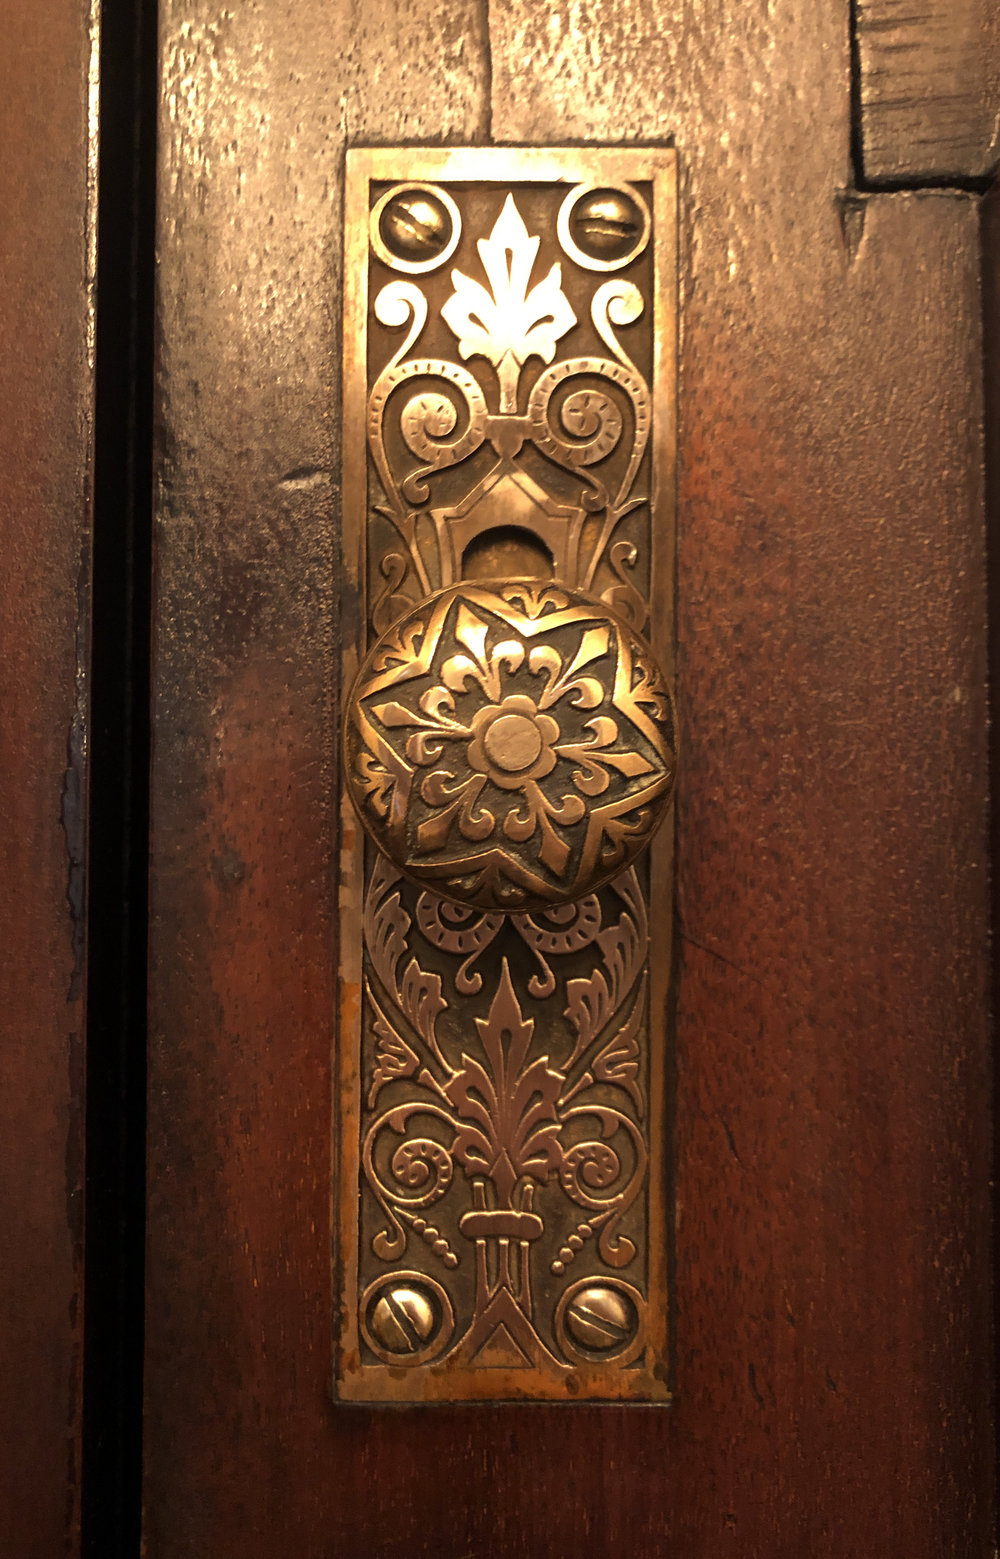 Cast bronze flush bolt on the front door made by Russell & Irwin in 1885.